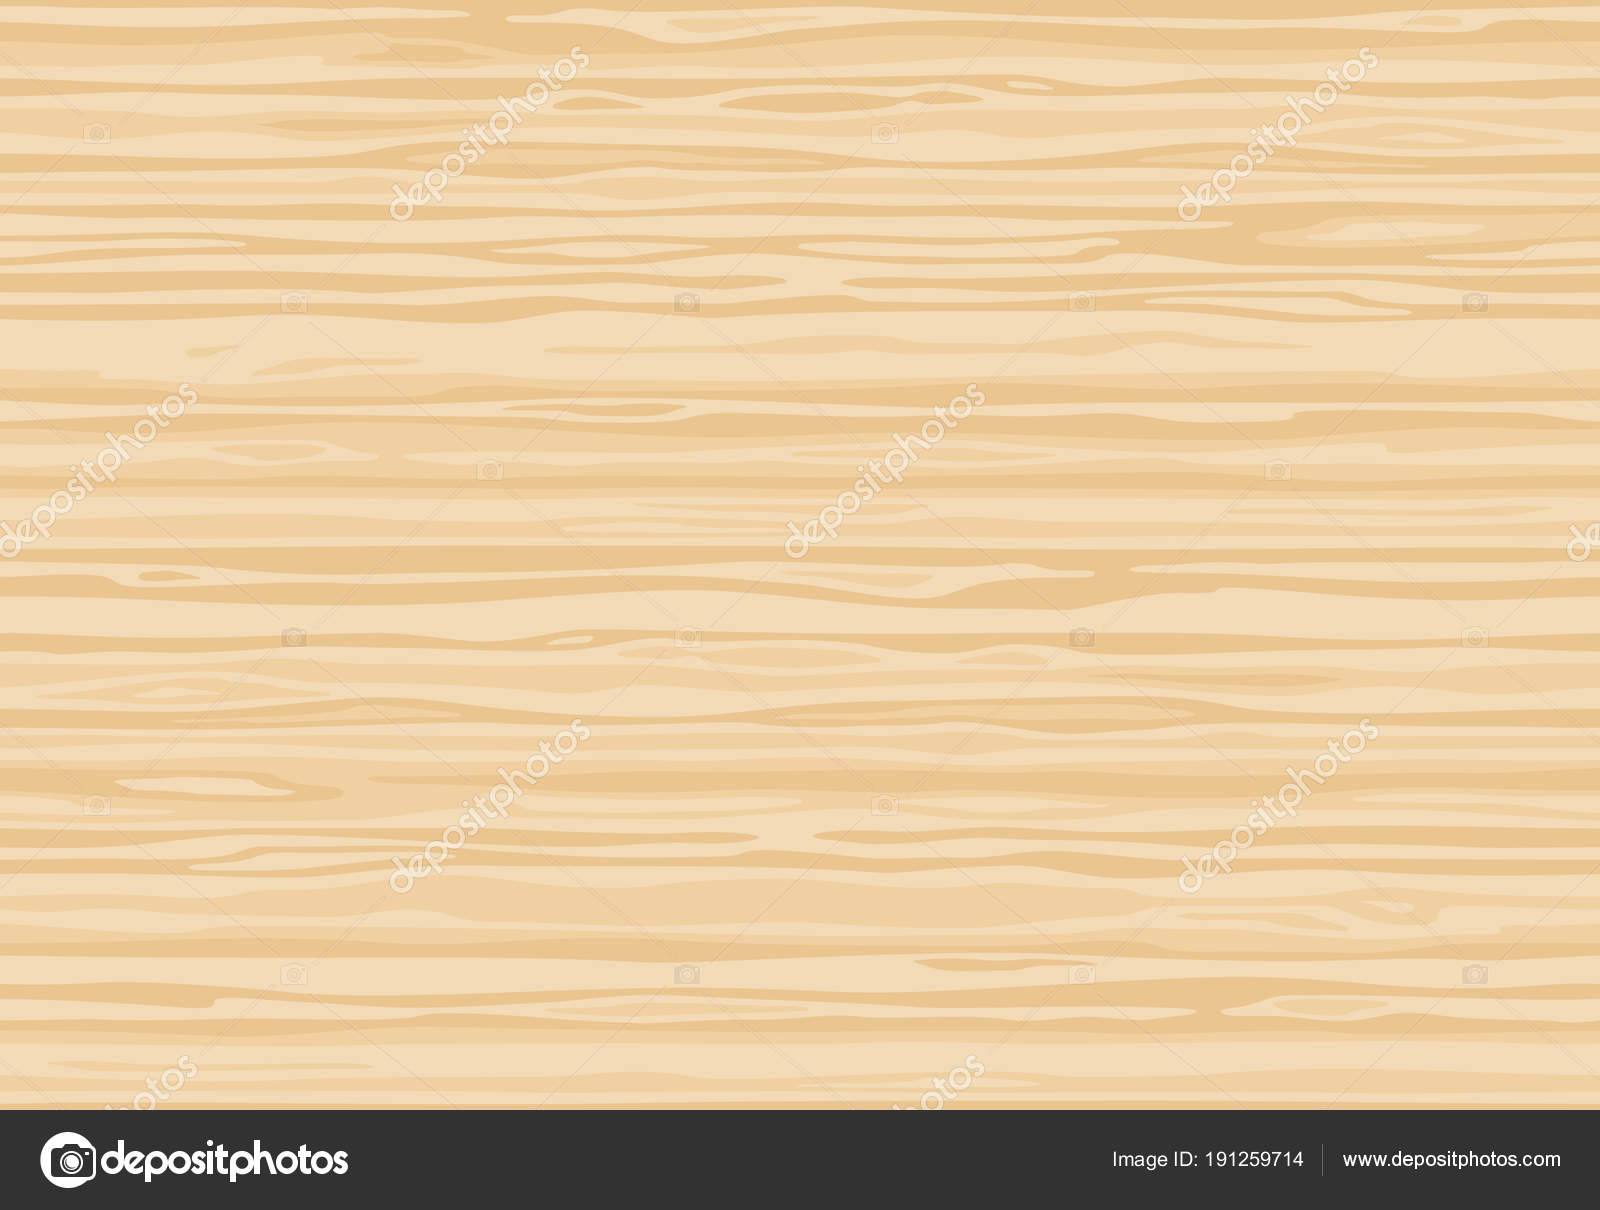 Natural Light Beige Wooden Wall Plank Table Floor Surface Cutting ...